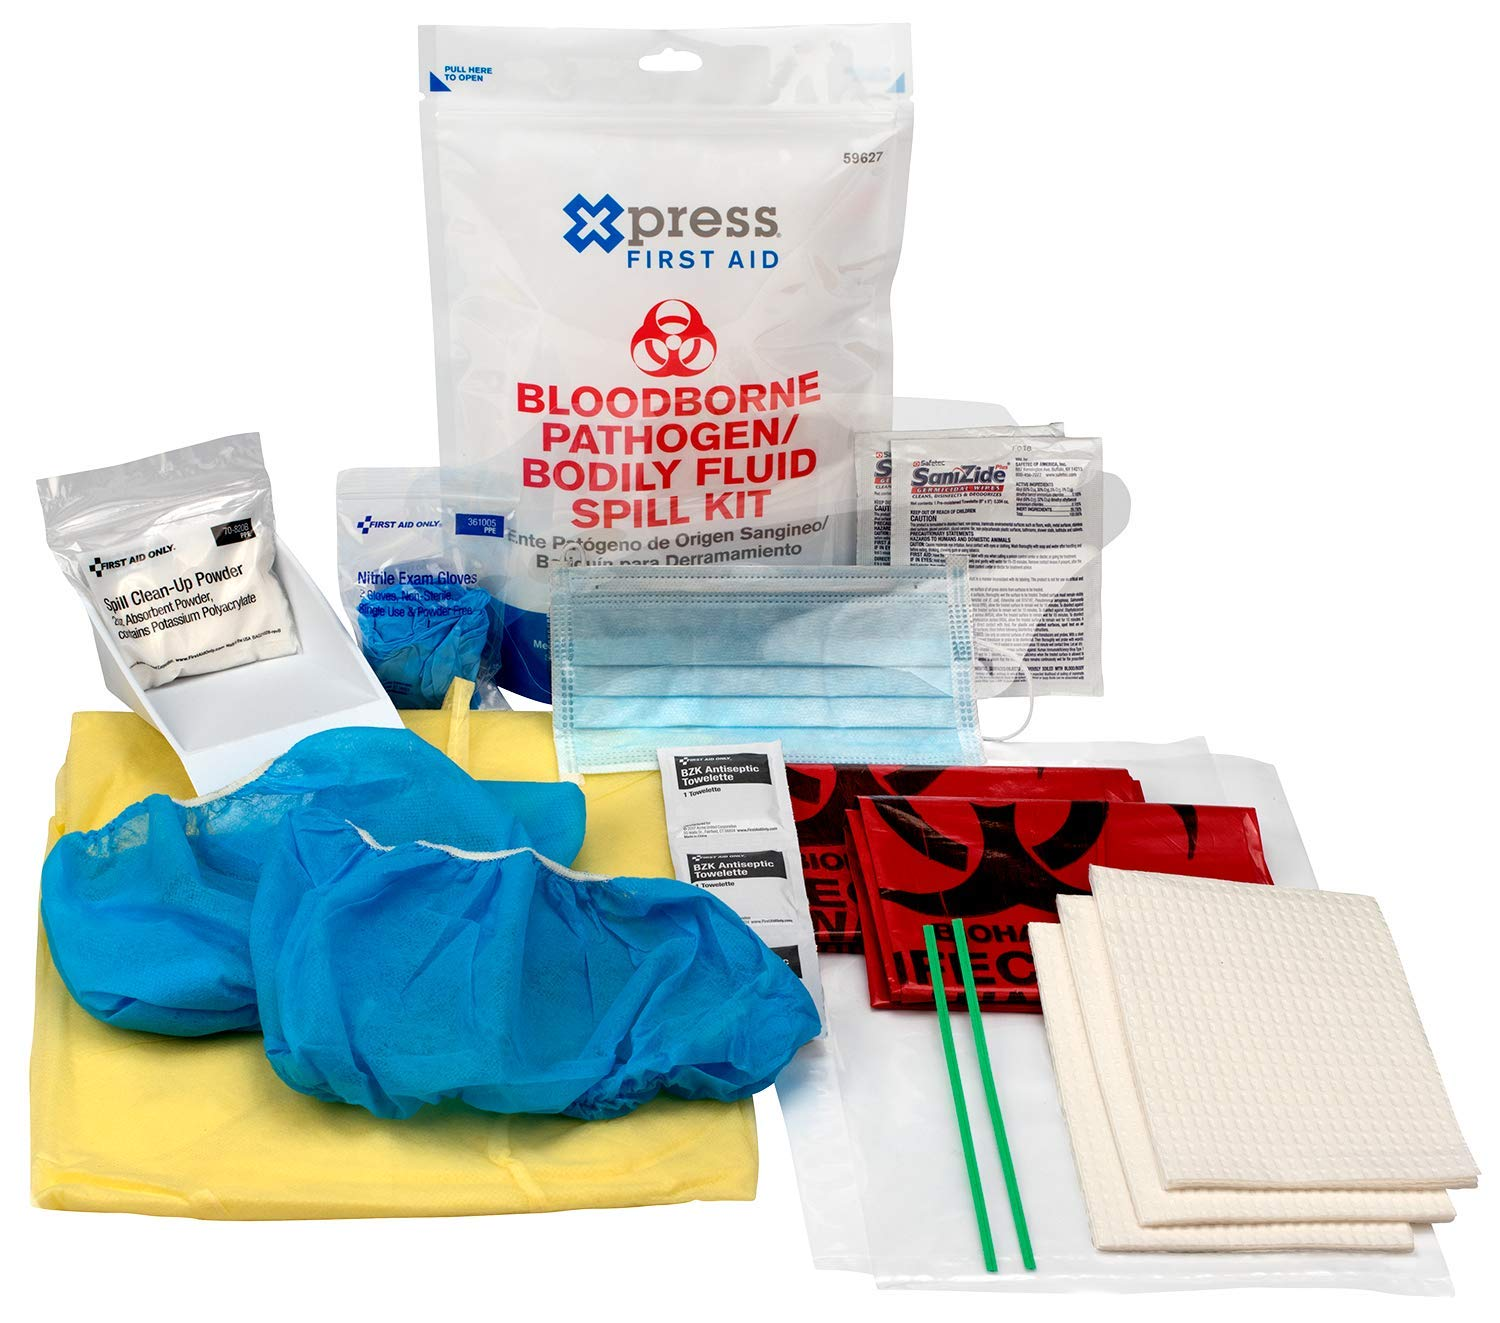 Bloodborne Pathogen Kit Bodily Spill and Response Kit Single Person Clean up Kit